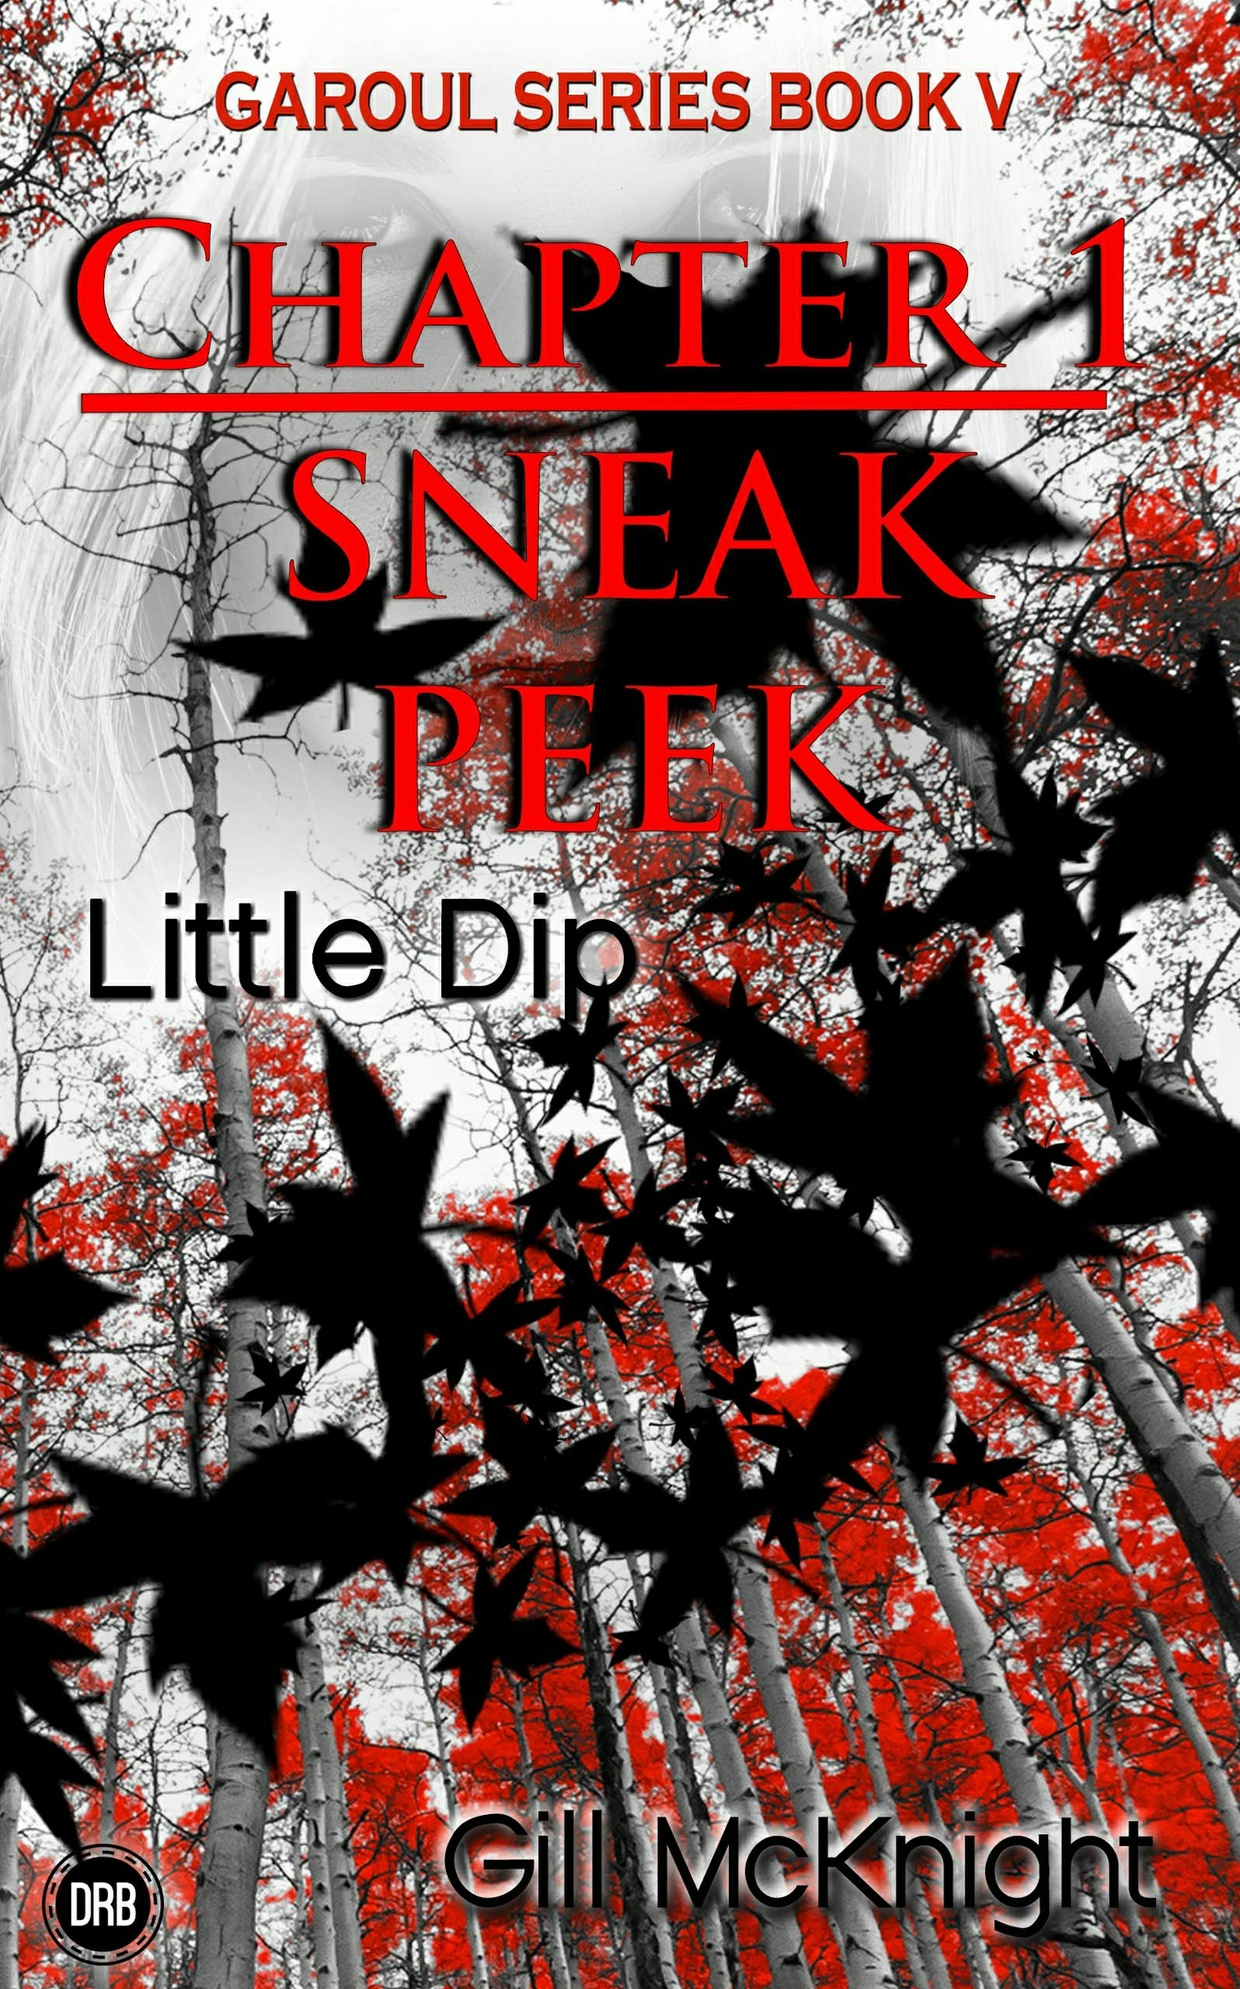 Little Dip by Gill McKnight - Chapter 1 sneak peek (epub)